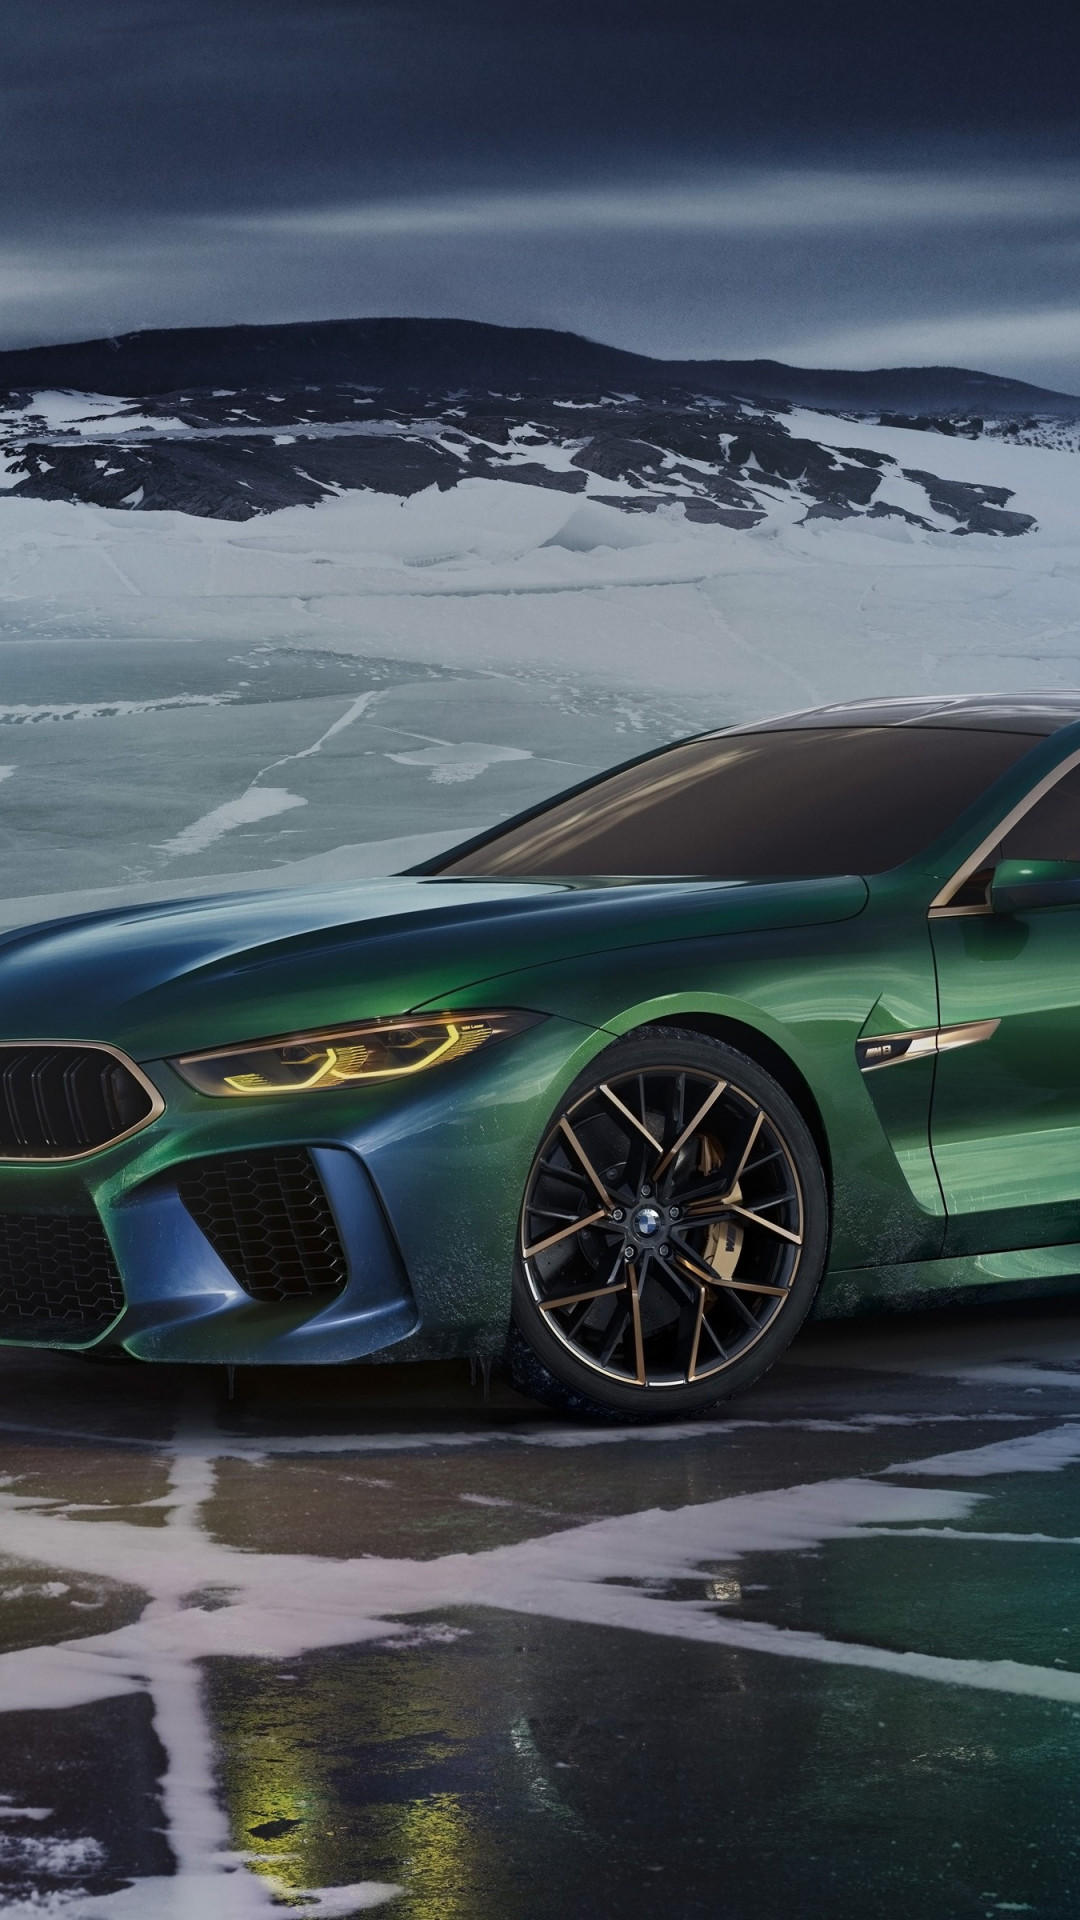 BMW Concept M8 Gran Coupe 2018 wallpaper 1080x1920